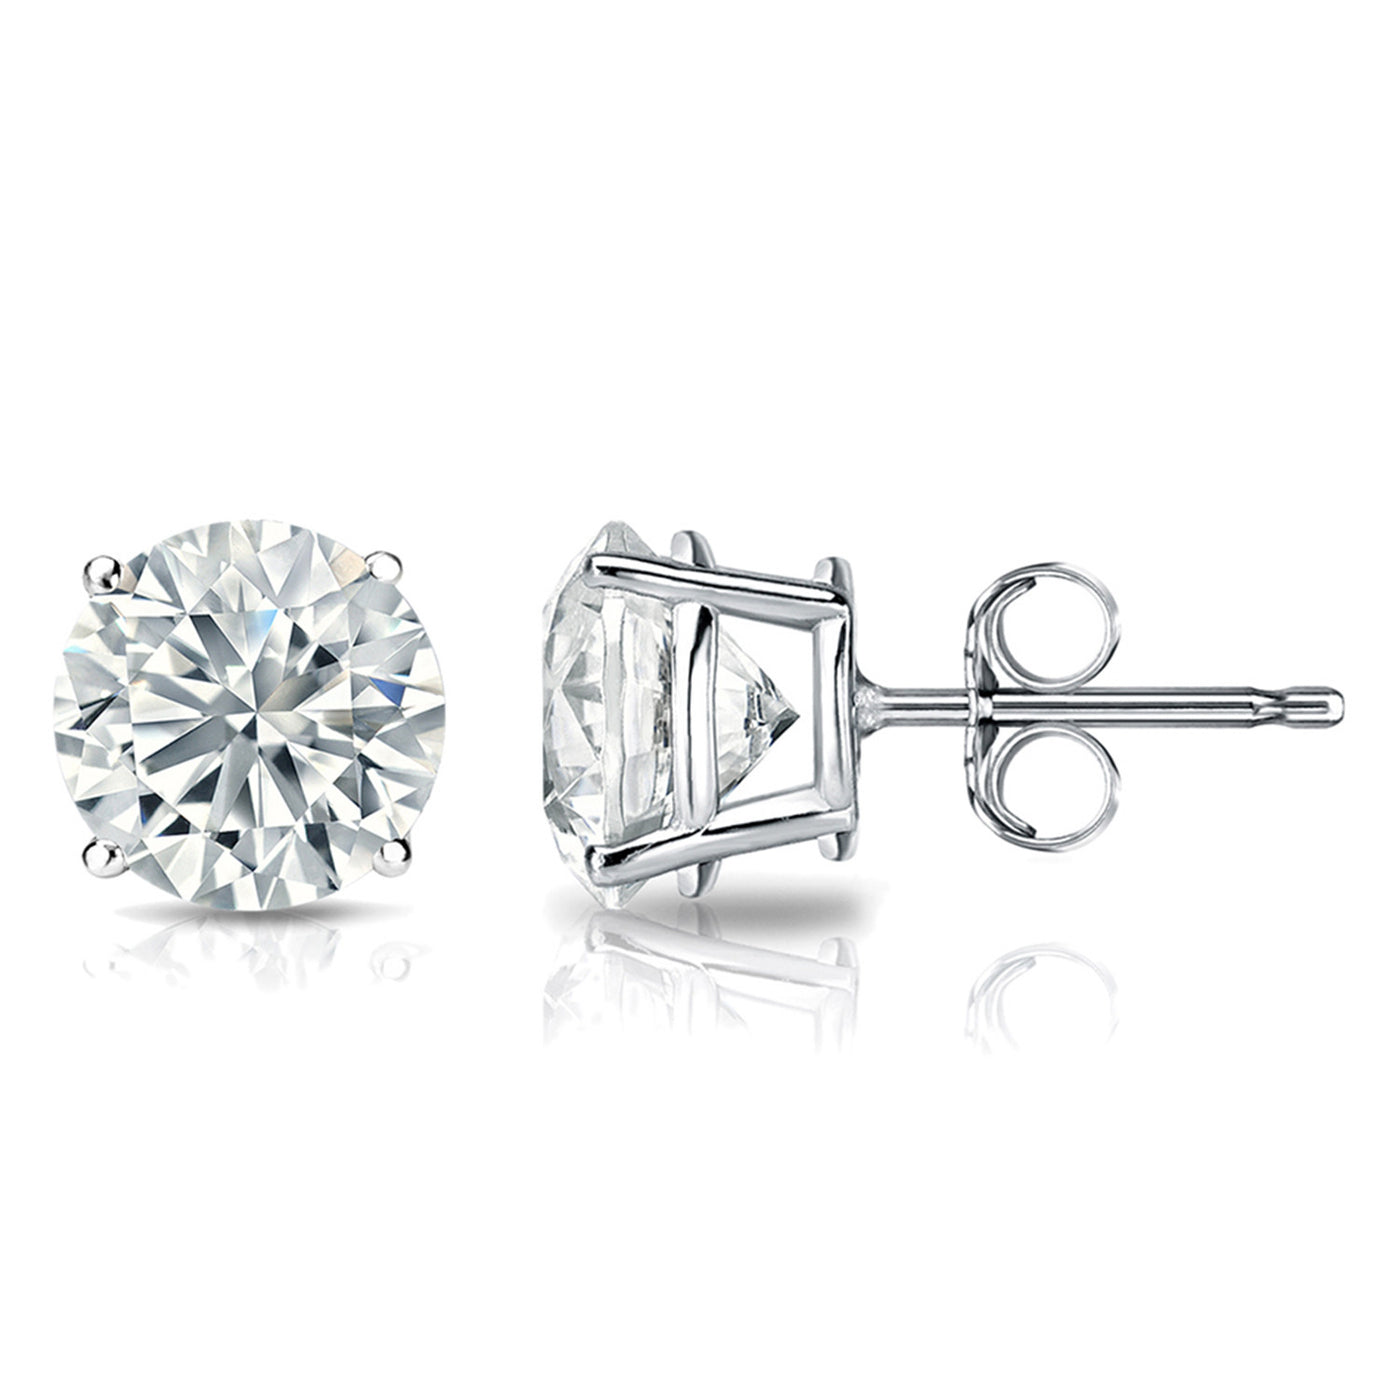 3133c4feab0bc 1/4 Carat Round 14k White Gold 4 Prong Basket Set Diamond Solitaire Stud  Earrings (Classic Quality)